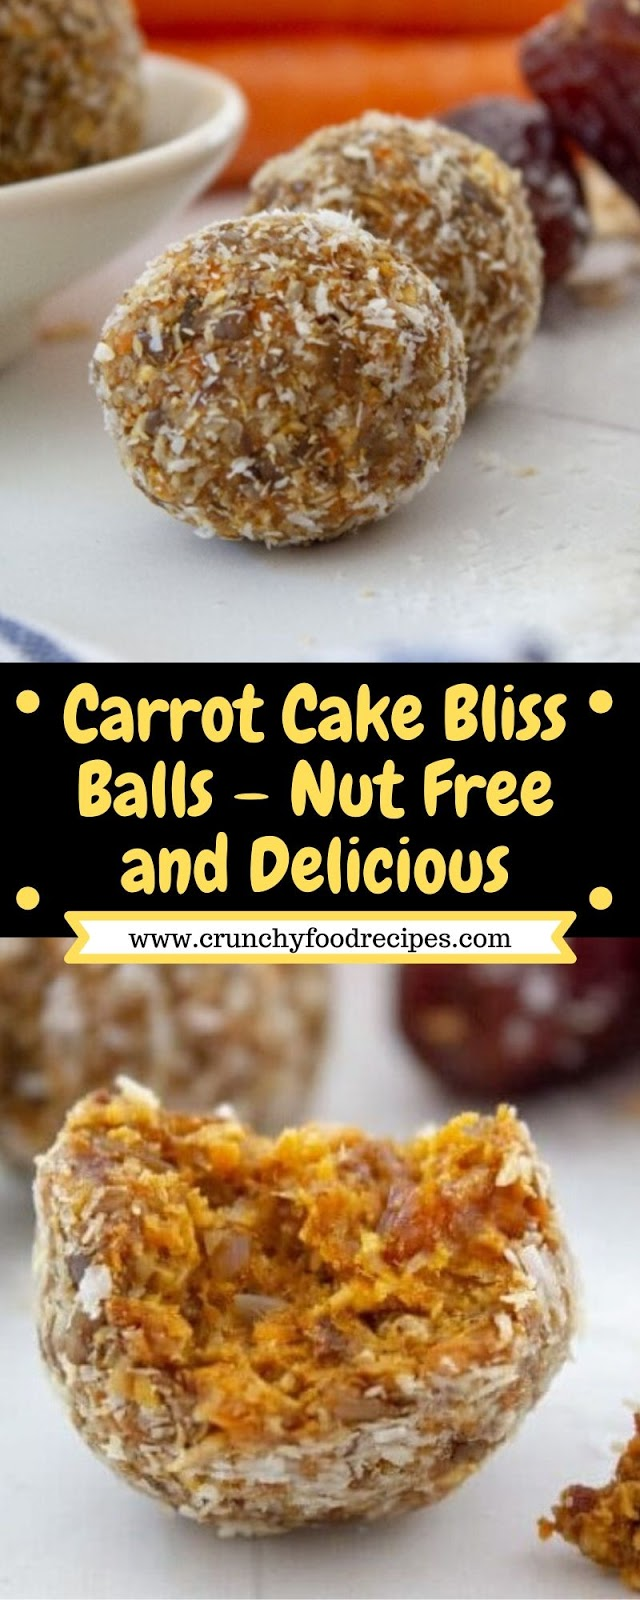 Carrot Cake Bliss Balls – Nut Free and Delicious